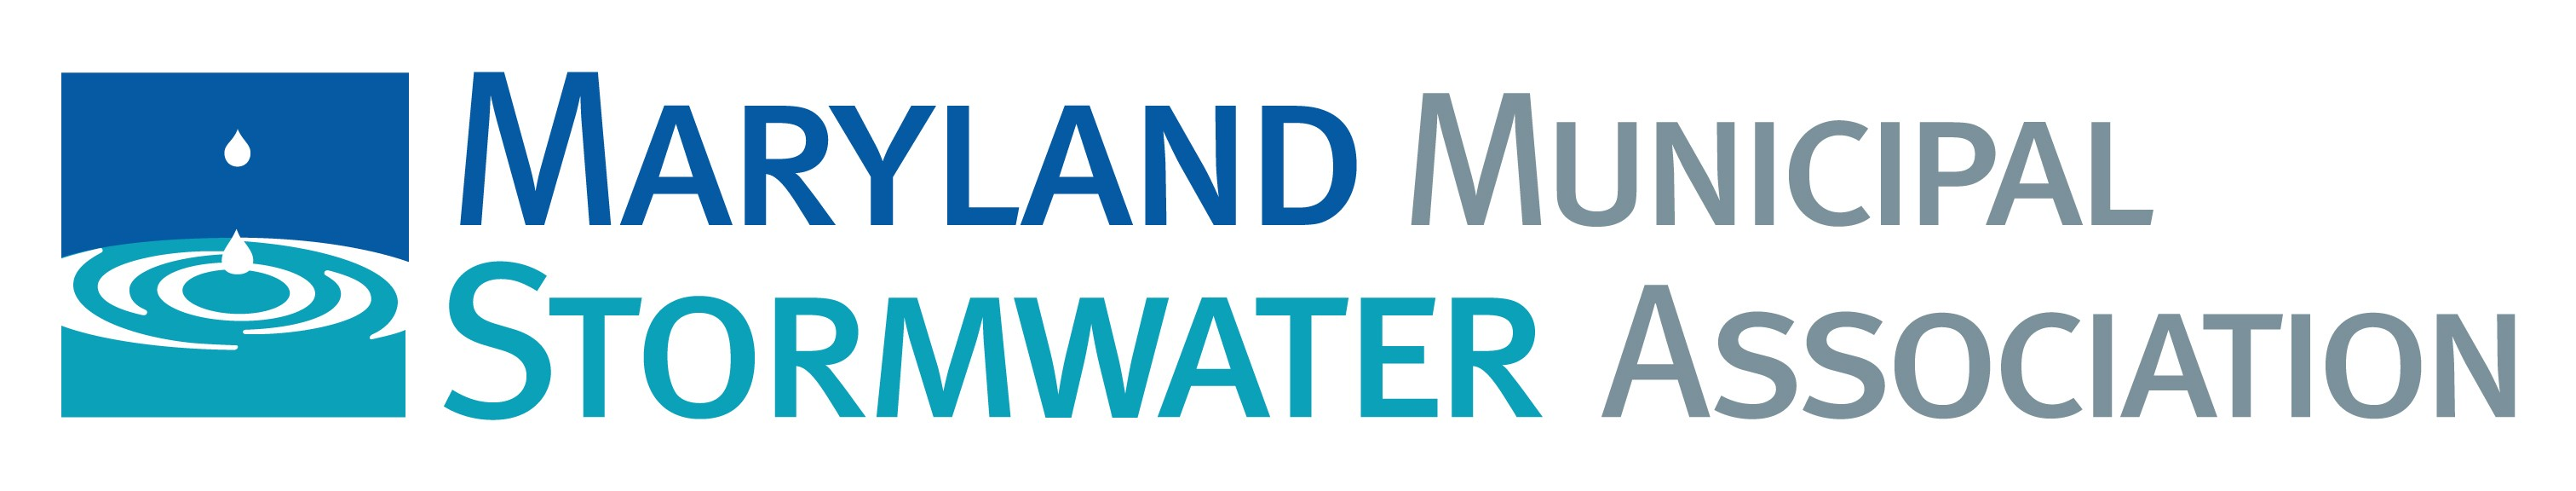 MARYLAND MUNICIPAL STORMWATER ASSOCIATION